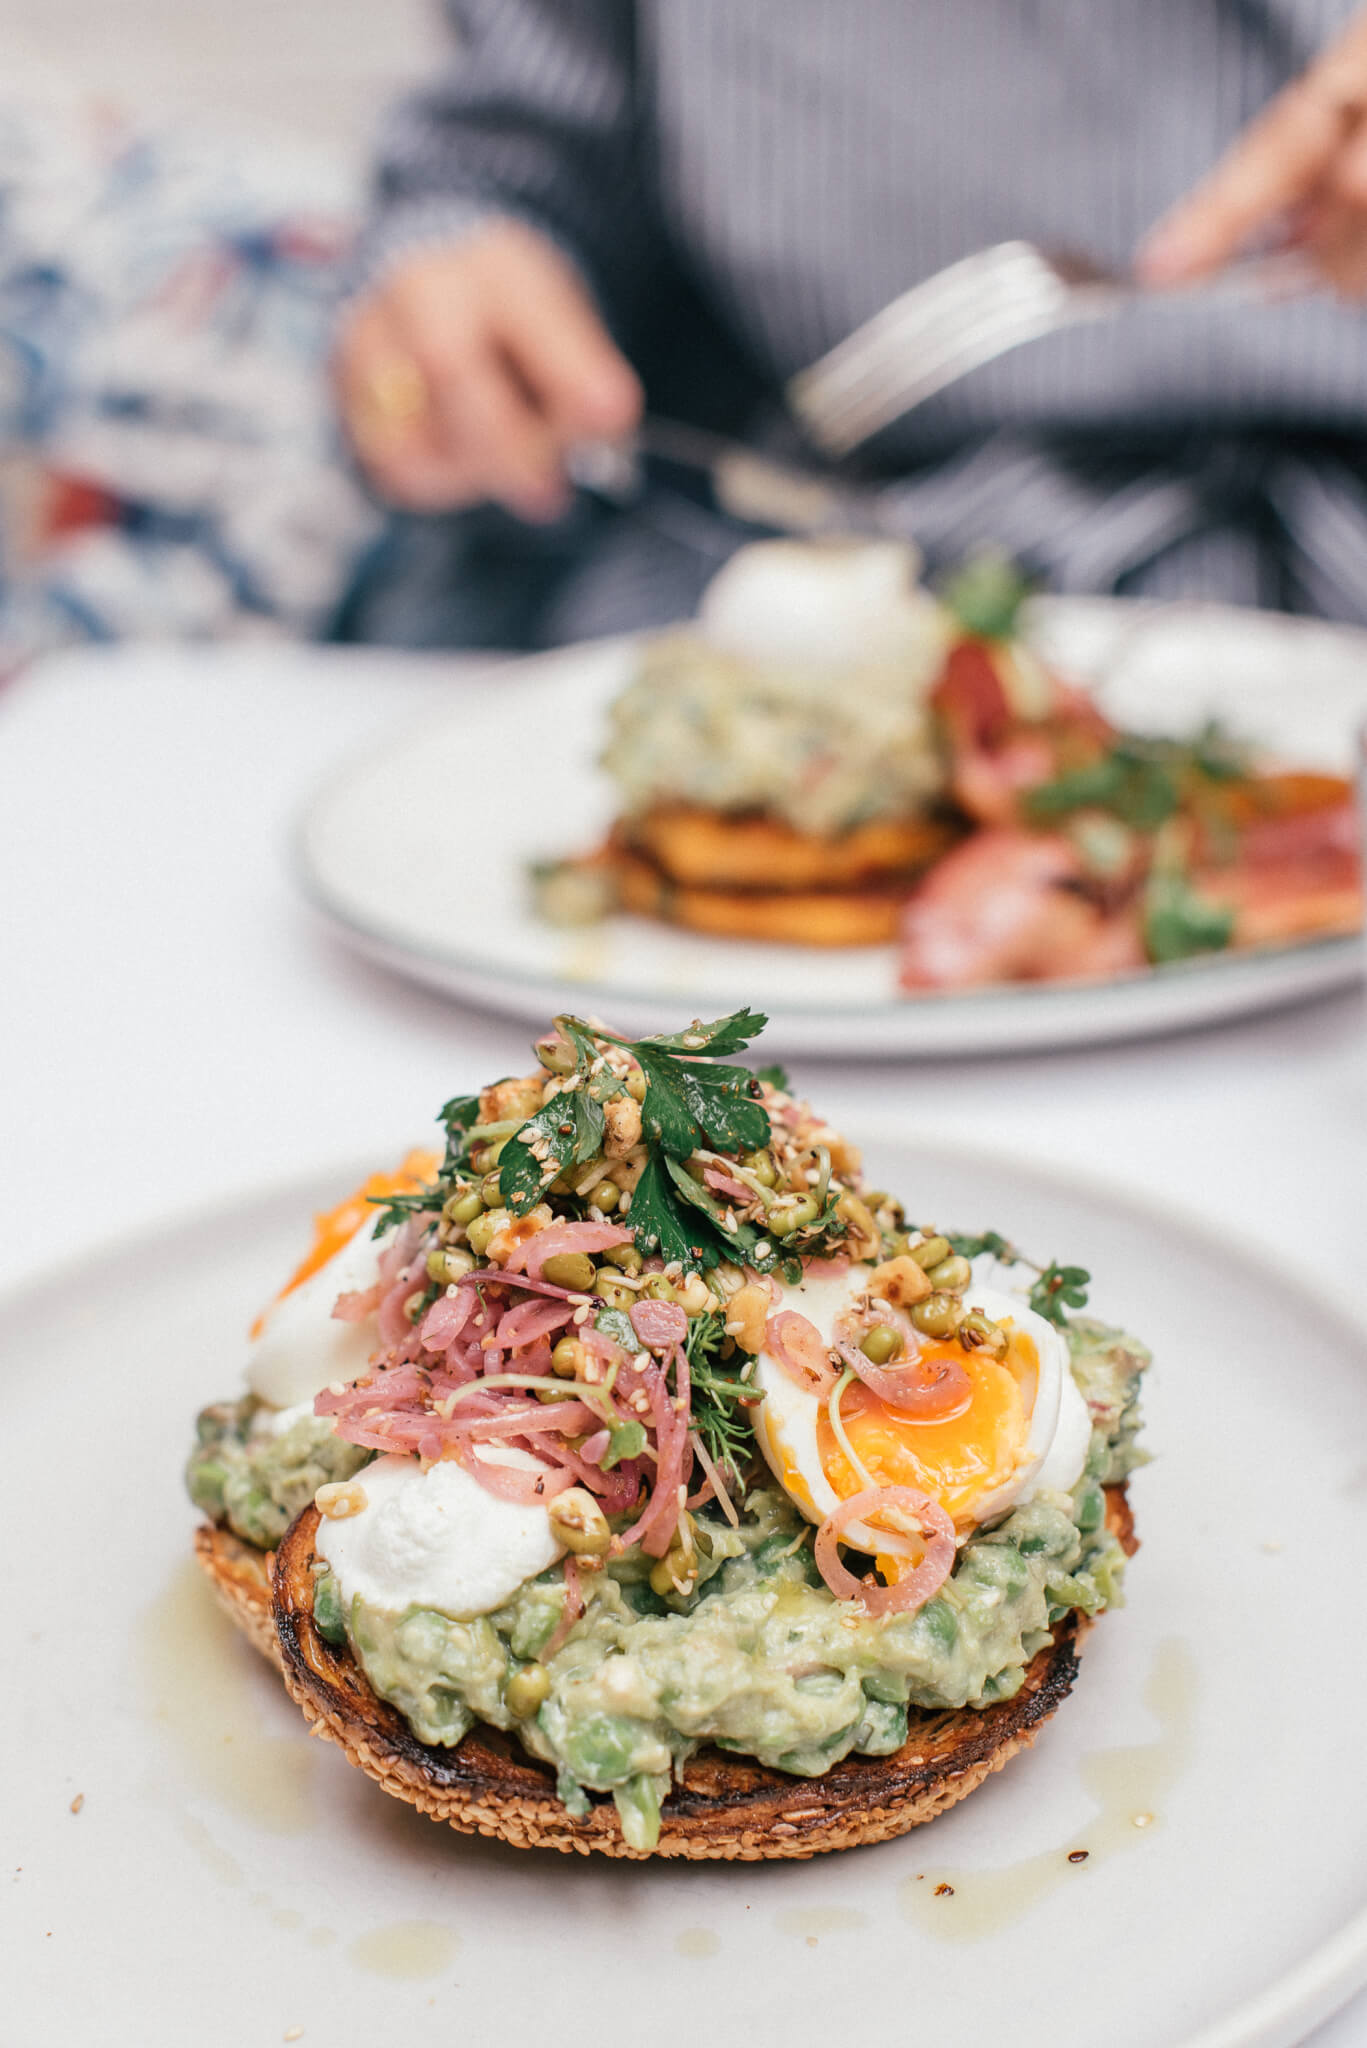 Asian   Italian   Brunch   Nigh Out   Best Restaurants in Melbourne: 15 Melbourne Restaurants You Don't Want to Miss featured by popular San Francisco travel blogger What The Fab